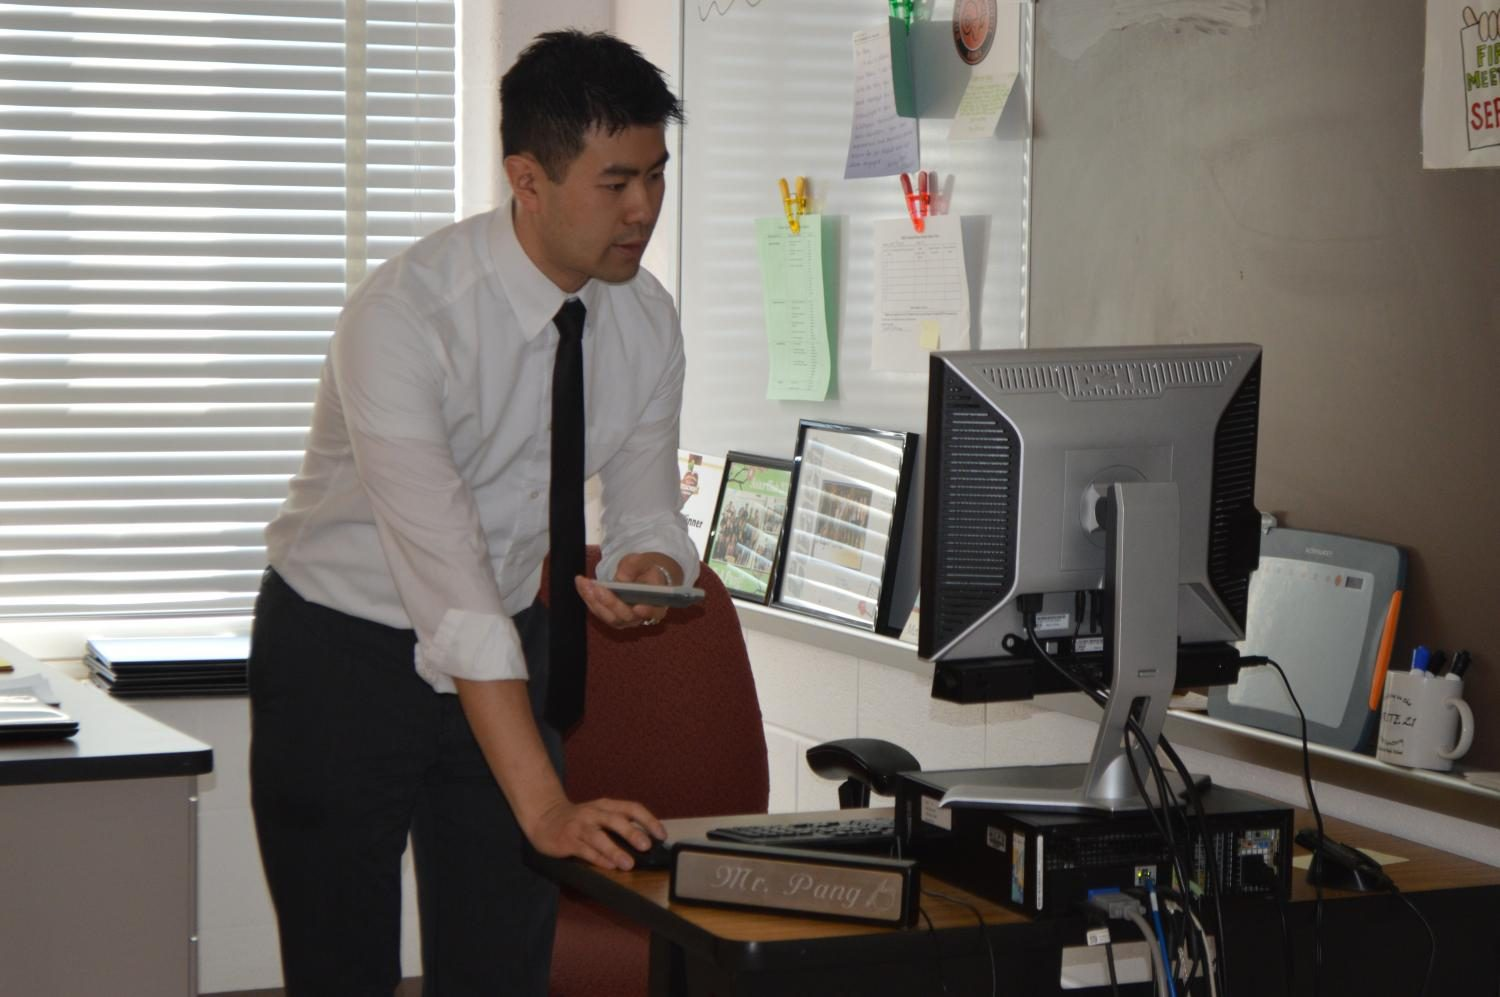 Washington+Post+2017+Teacher+of+the+Year+Sean+Pang+gets+ready+for+instruction+time+at+his+desk.+He+was+out+of+21+other+finalists+and+has+been+a+teacher+at+RHS+for+six+years.+